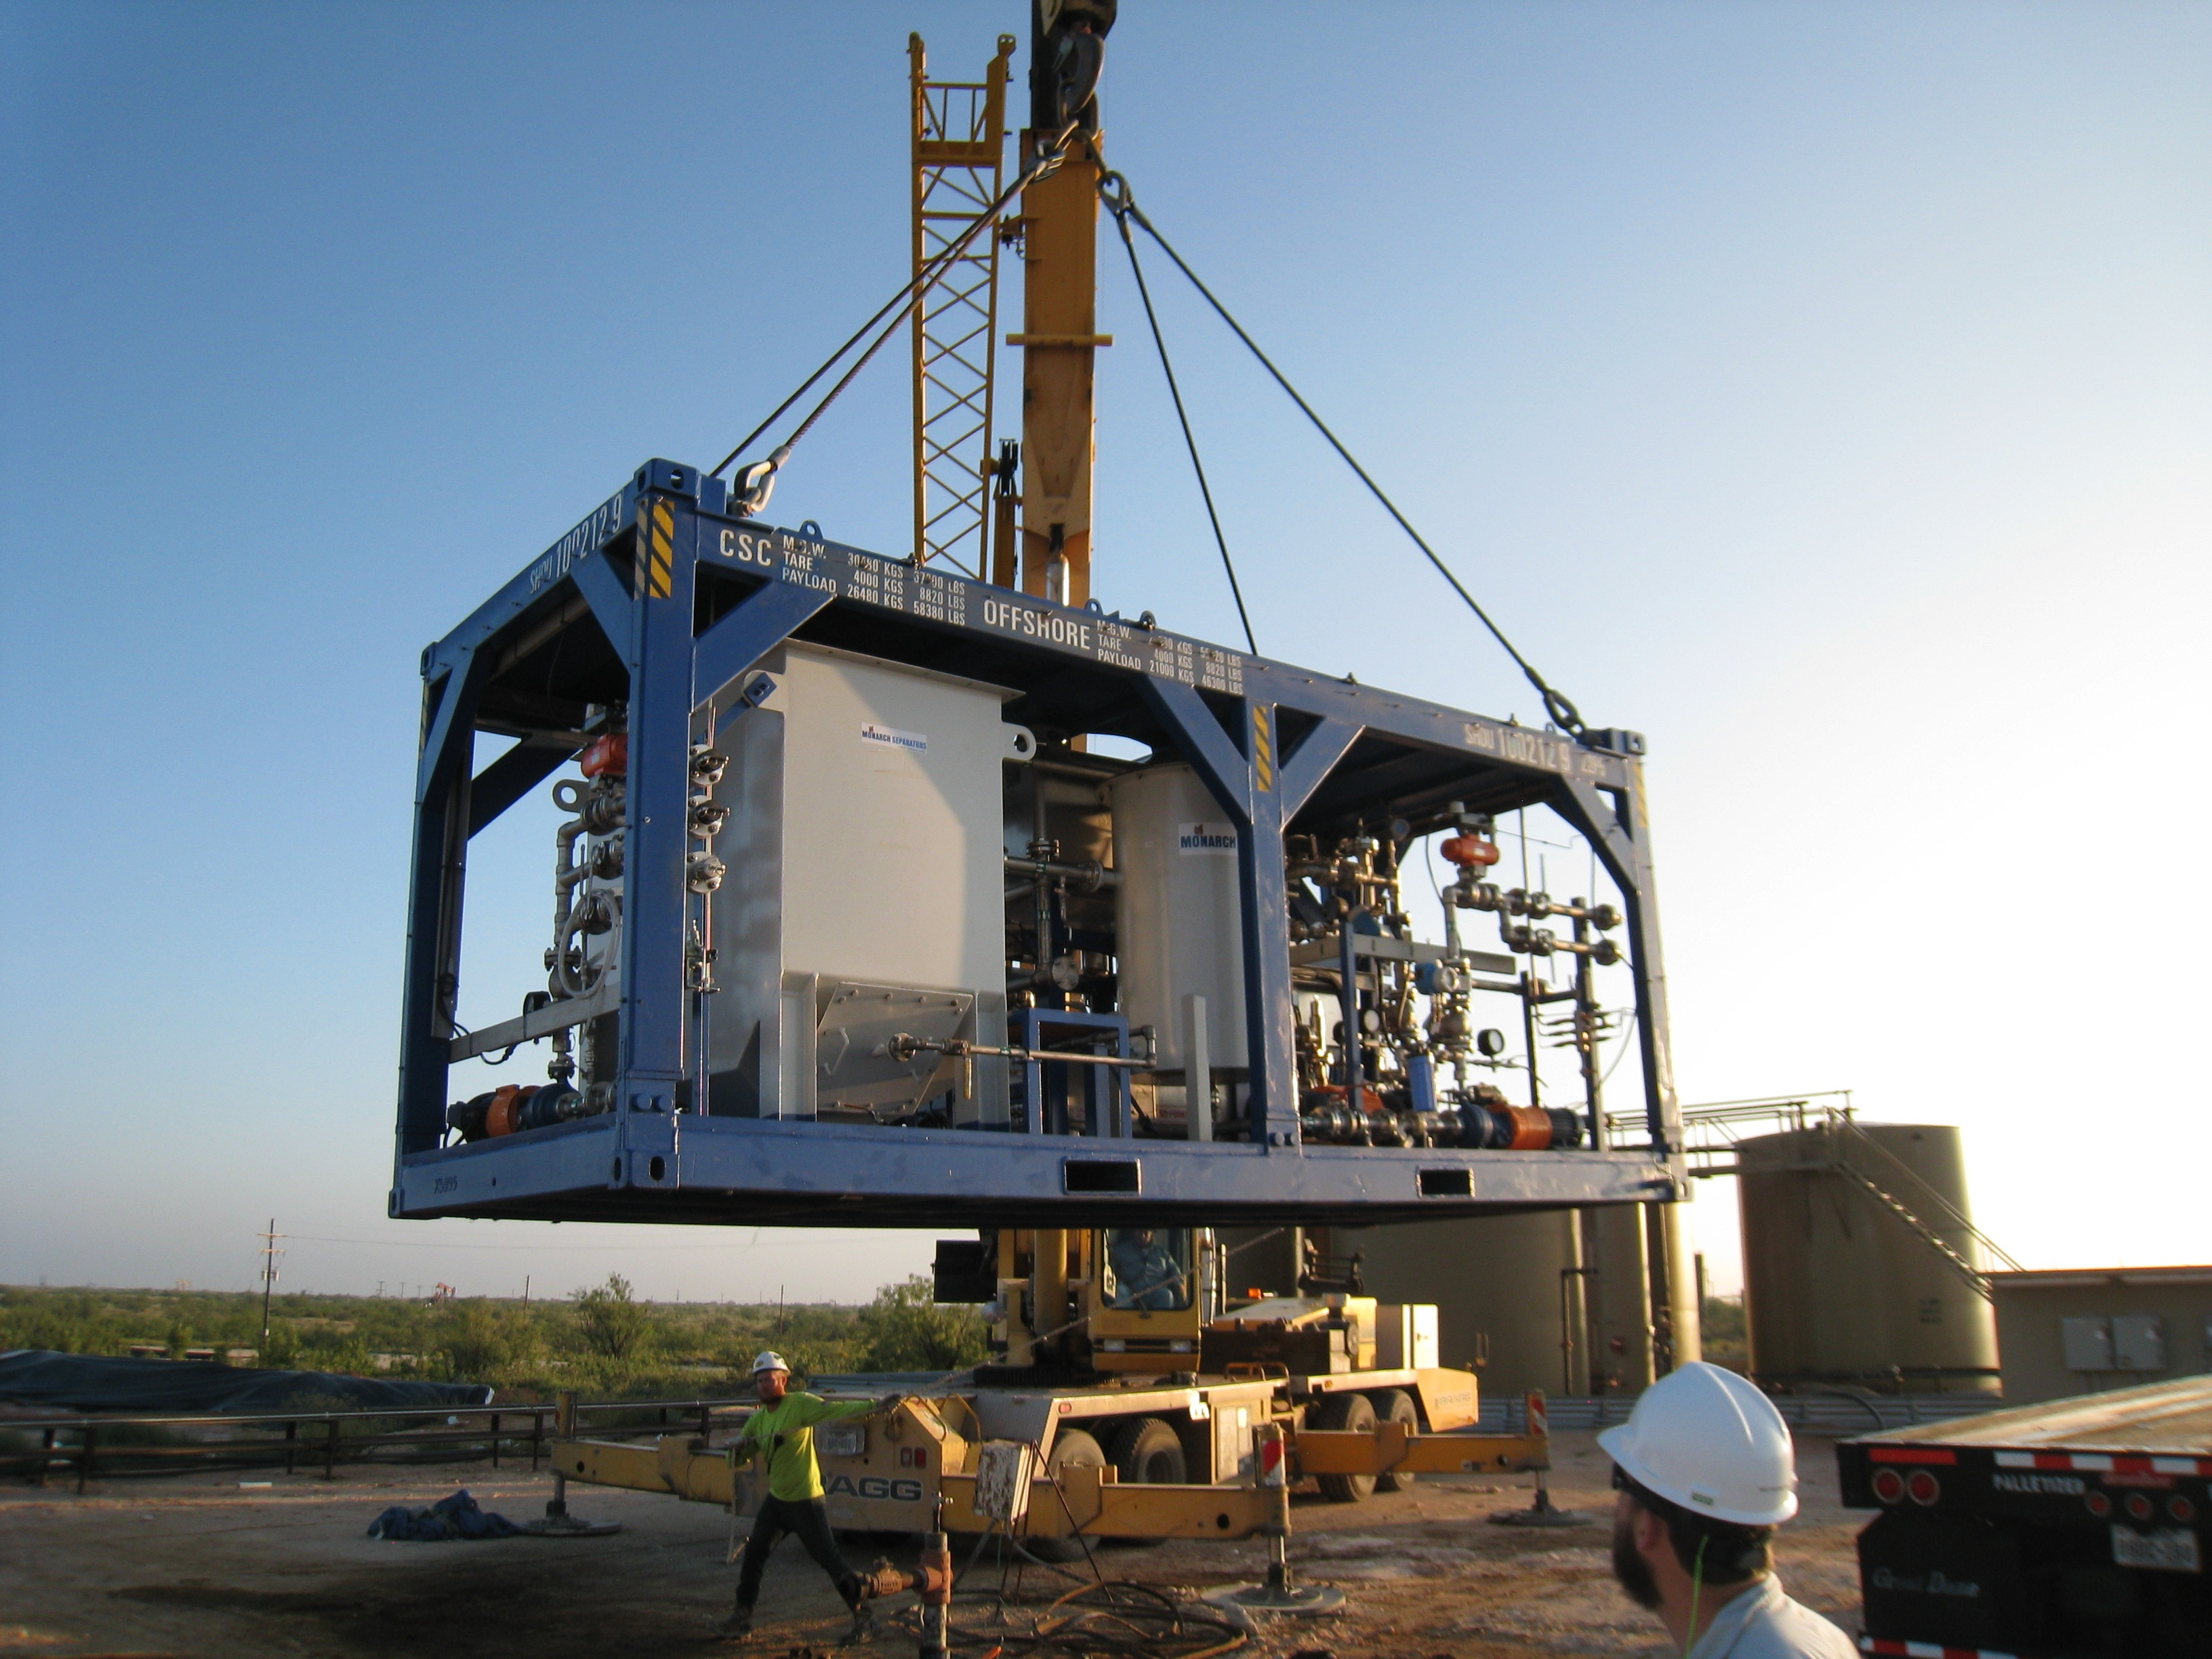 Water Standard's H2O Spectrum mobile system is being delivered in the Permian Basin. (Source: Water Standard)